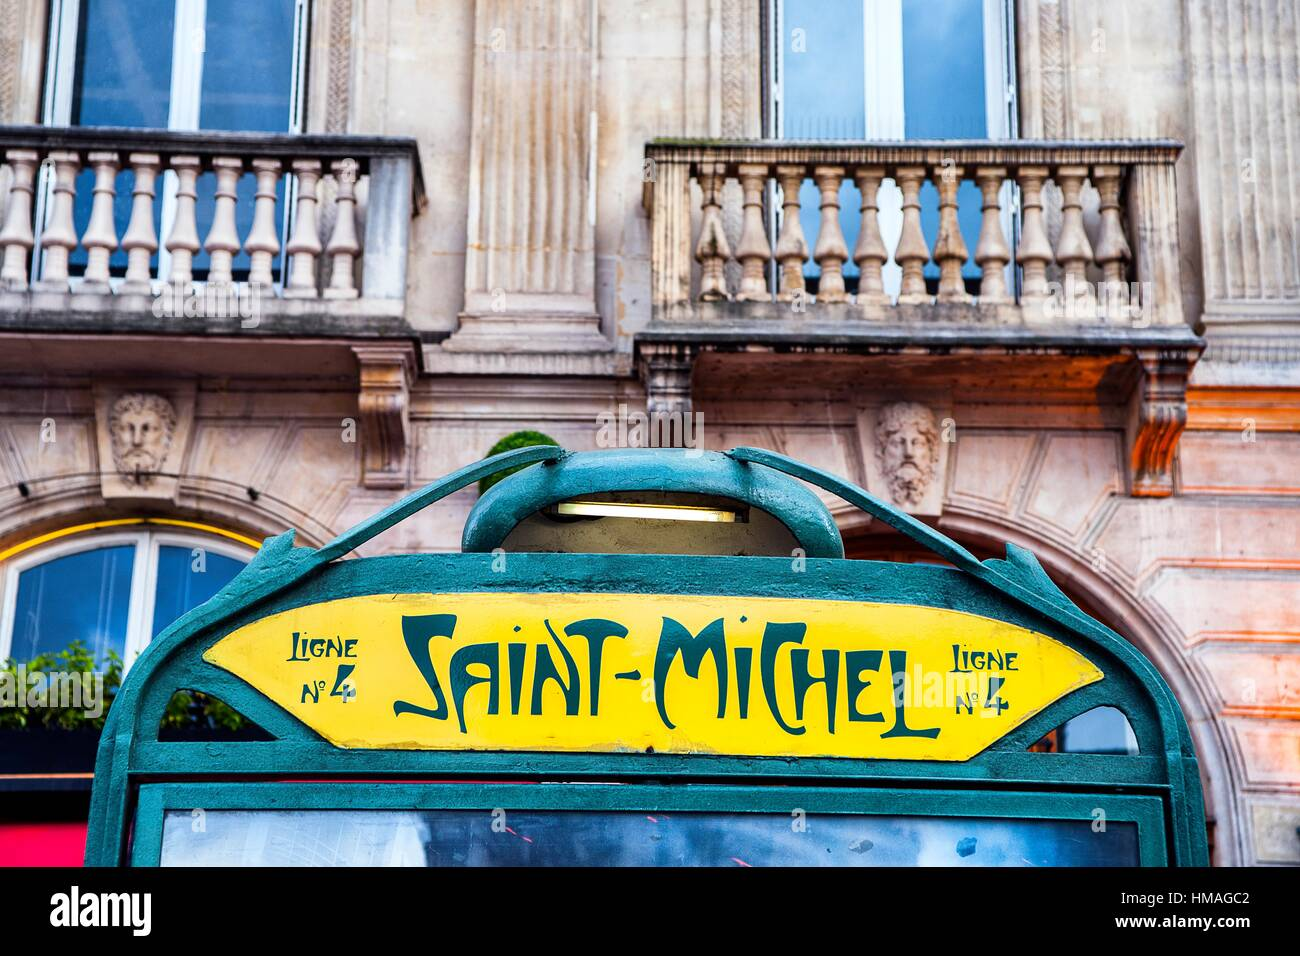 saint michel metro station paris france stock photo 132998098 alamy. Black Bedroom Furniture Sets. Home Design Ideas